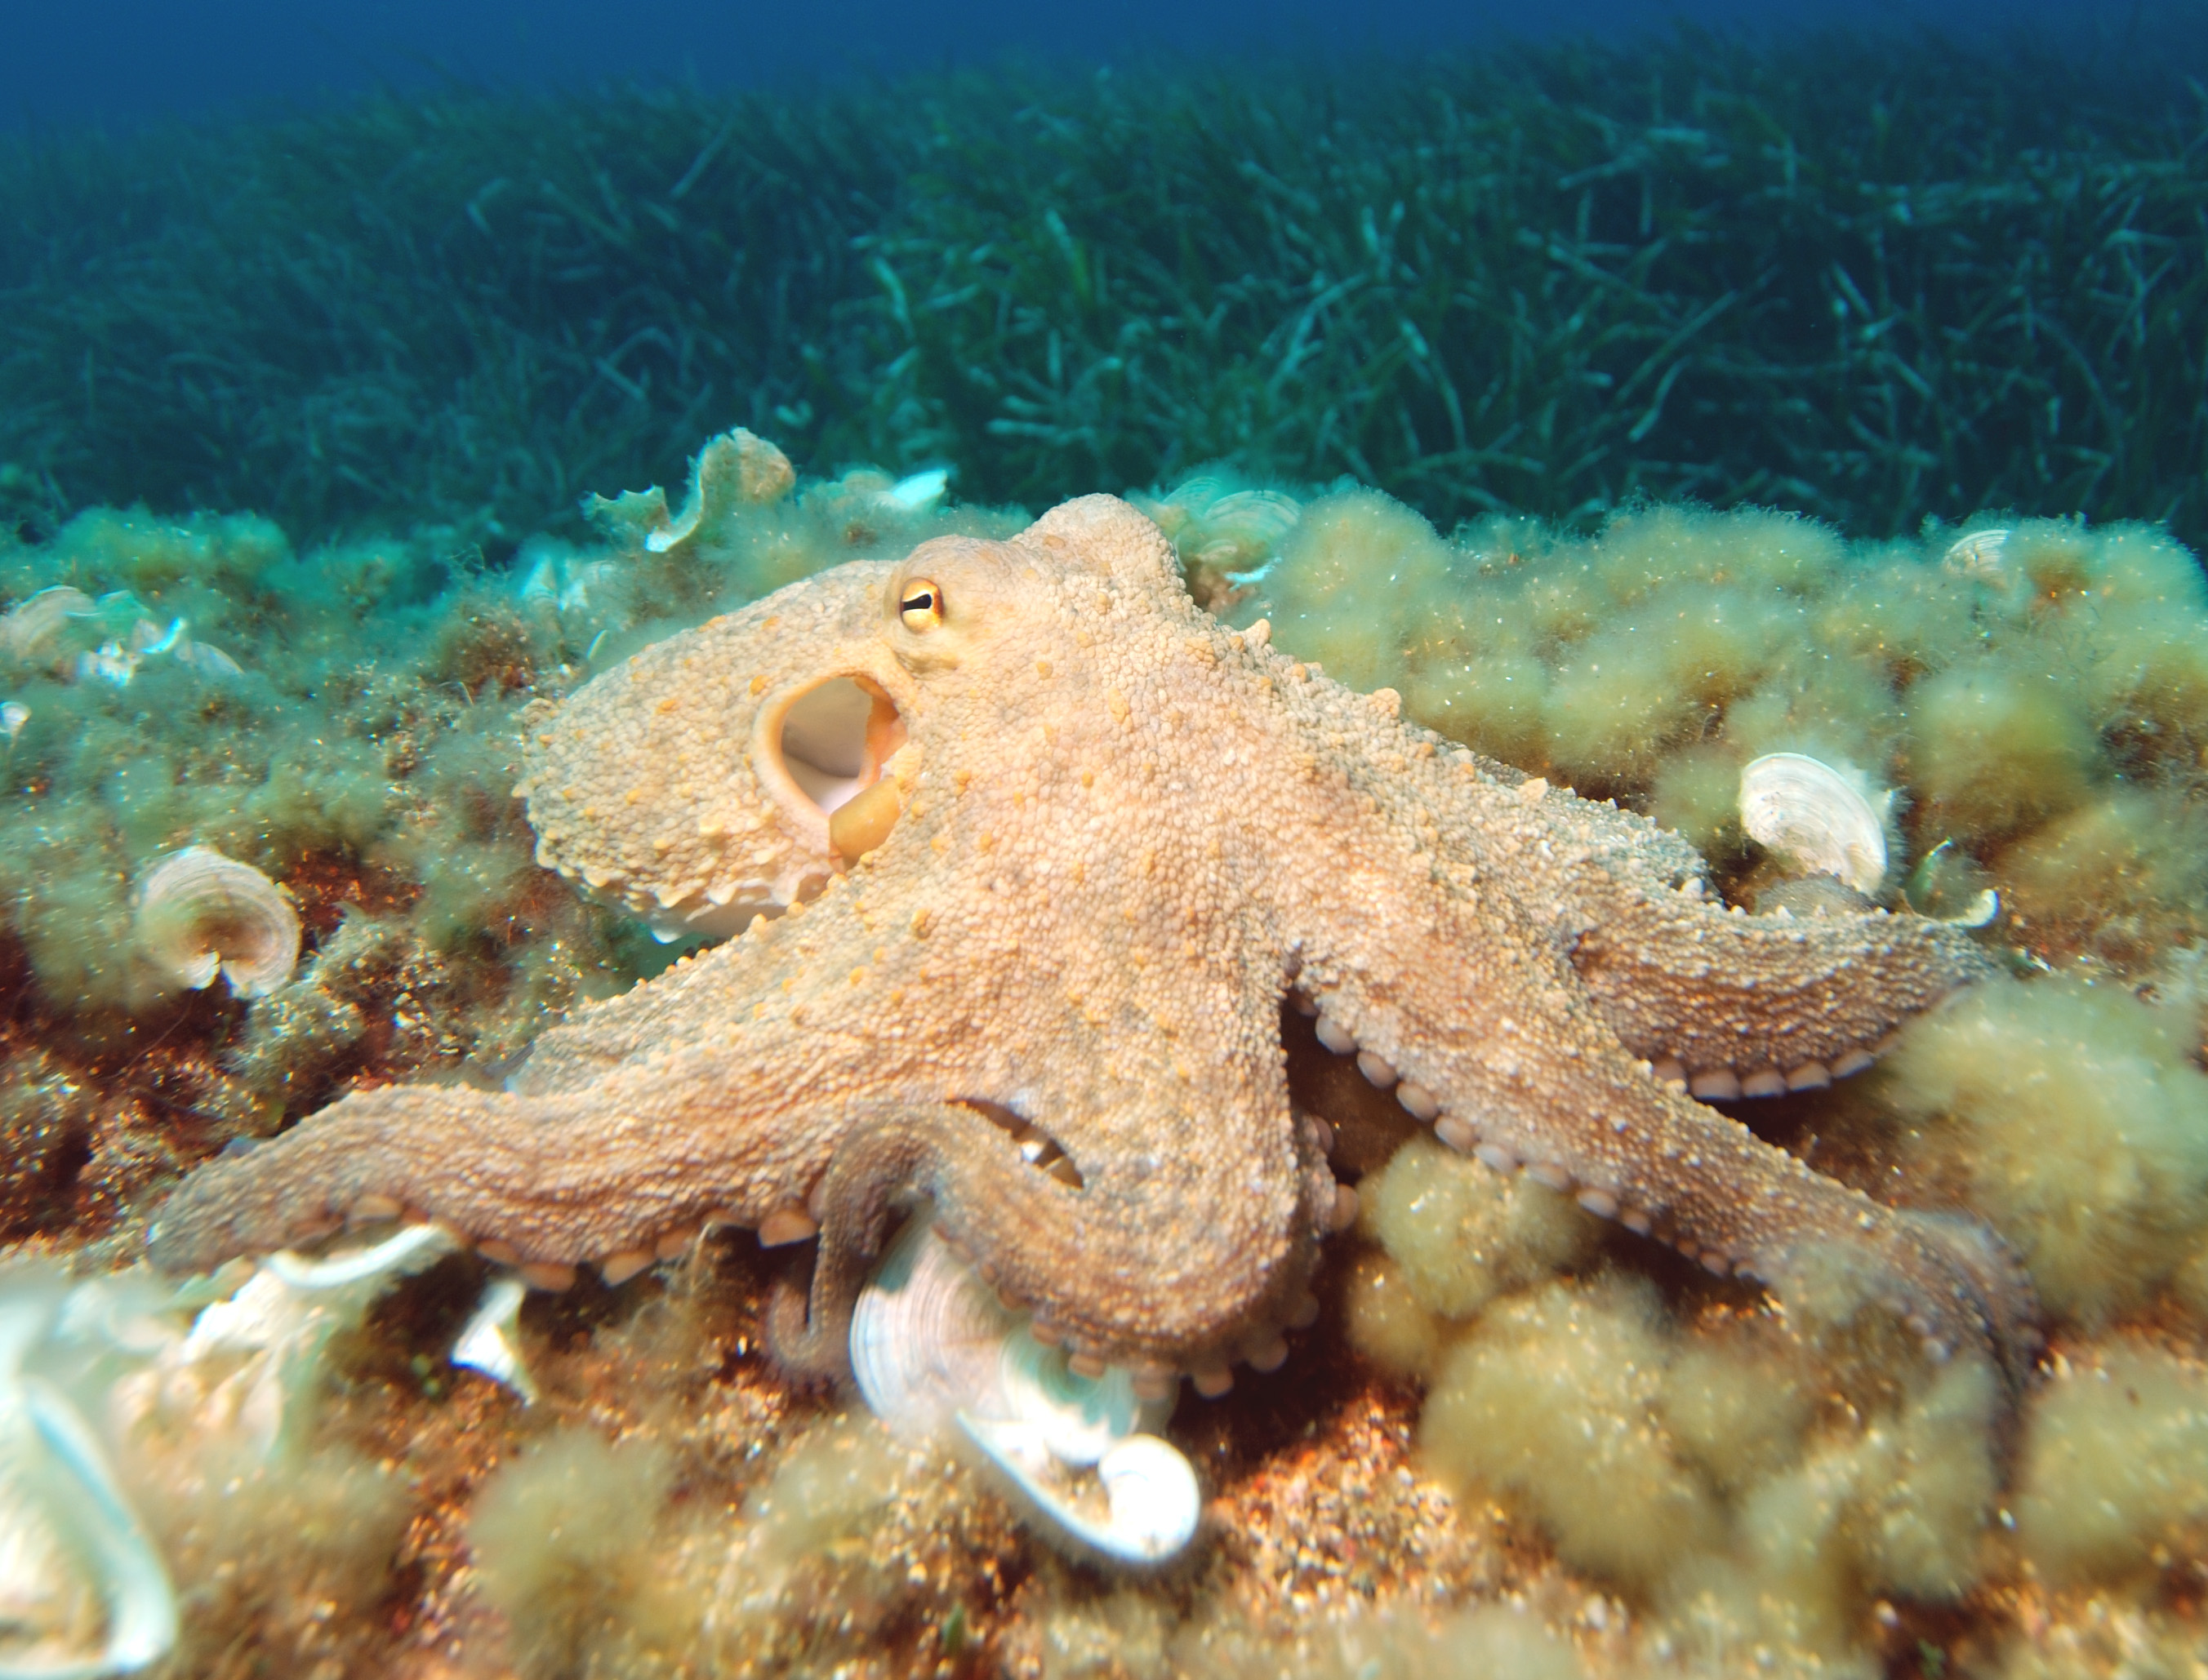 Description Octopus2.jpg